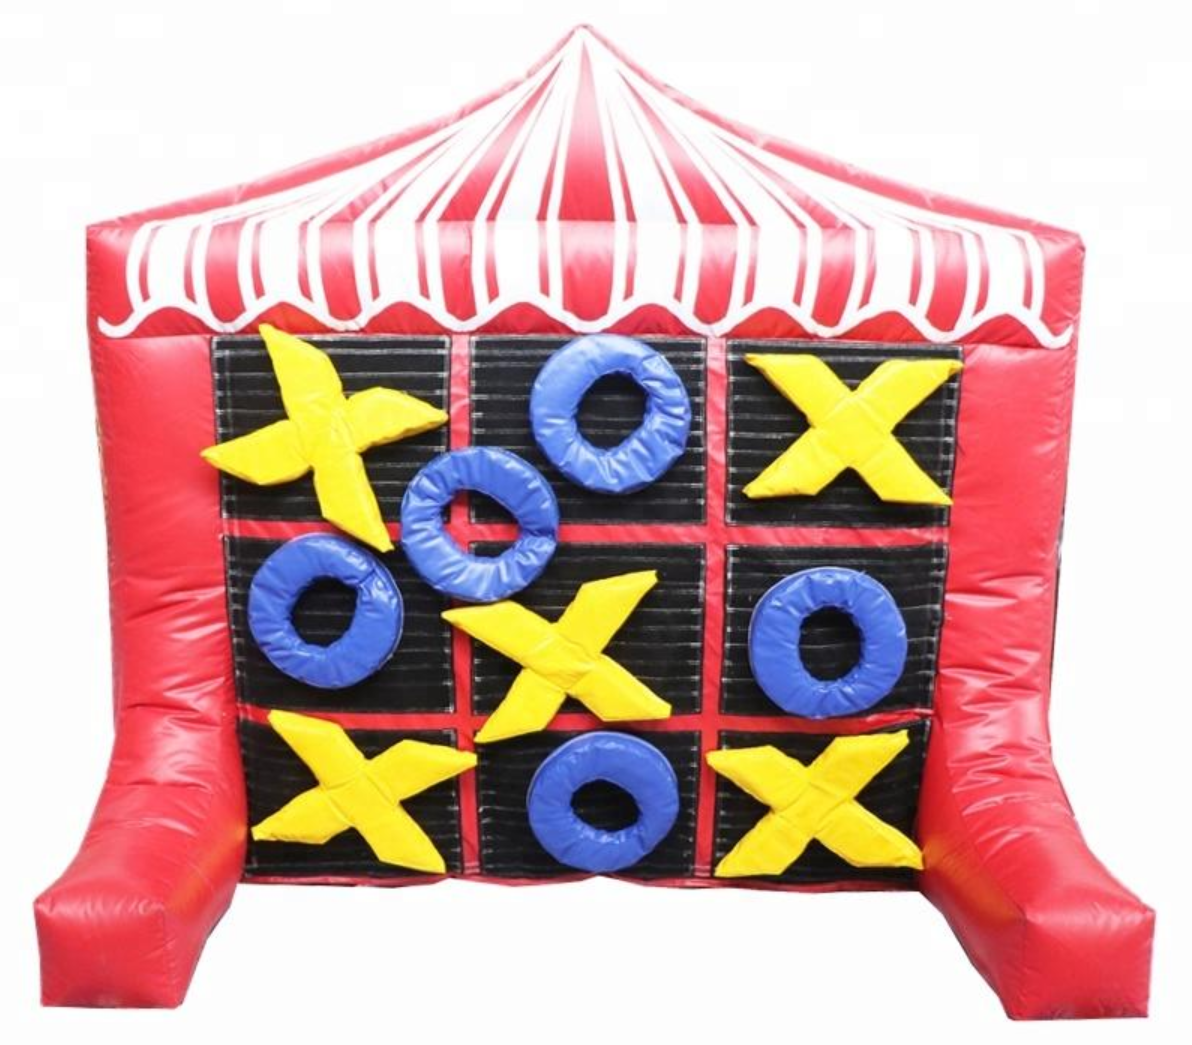 Inflatable Jumbo Connect 4-Tic Tac Toe R